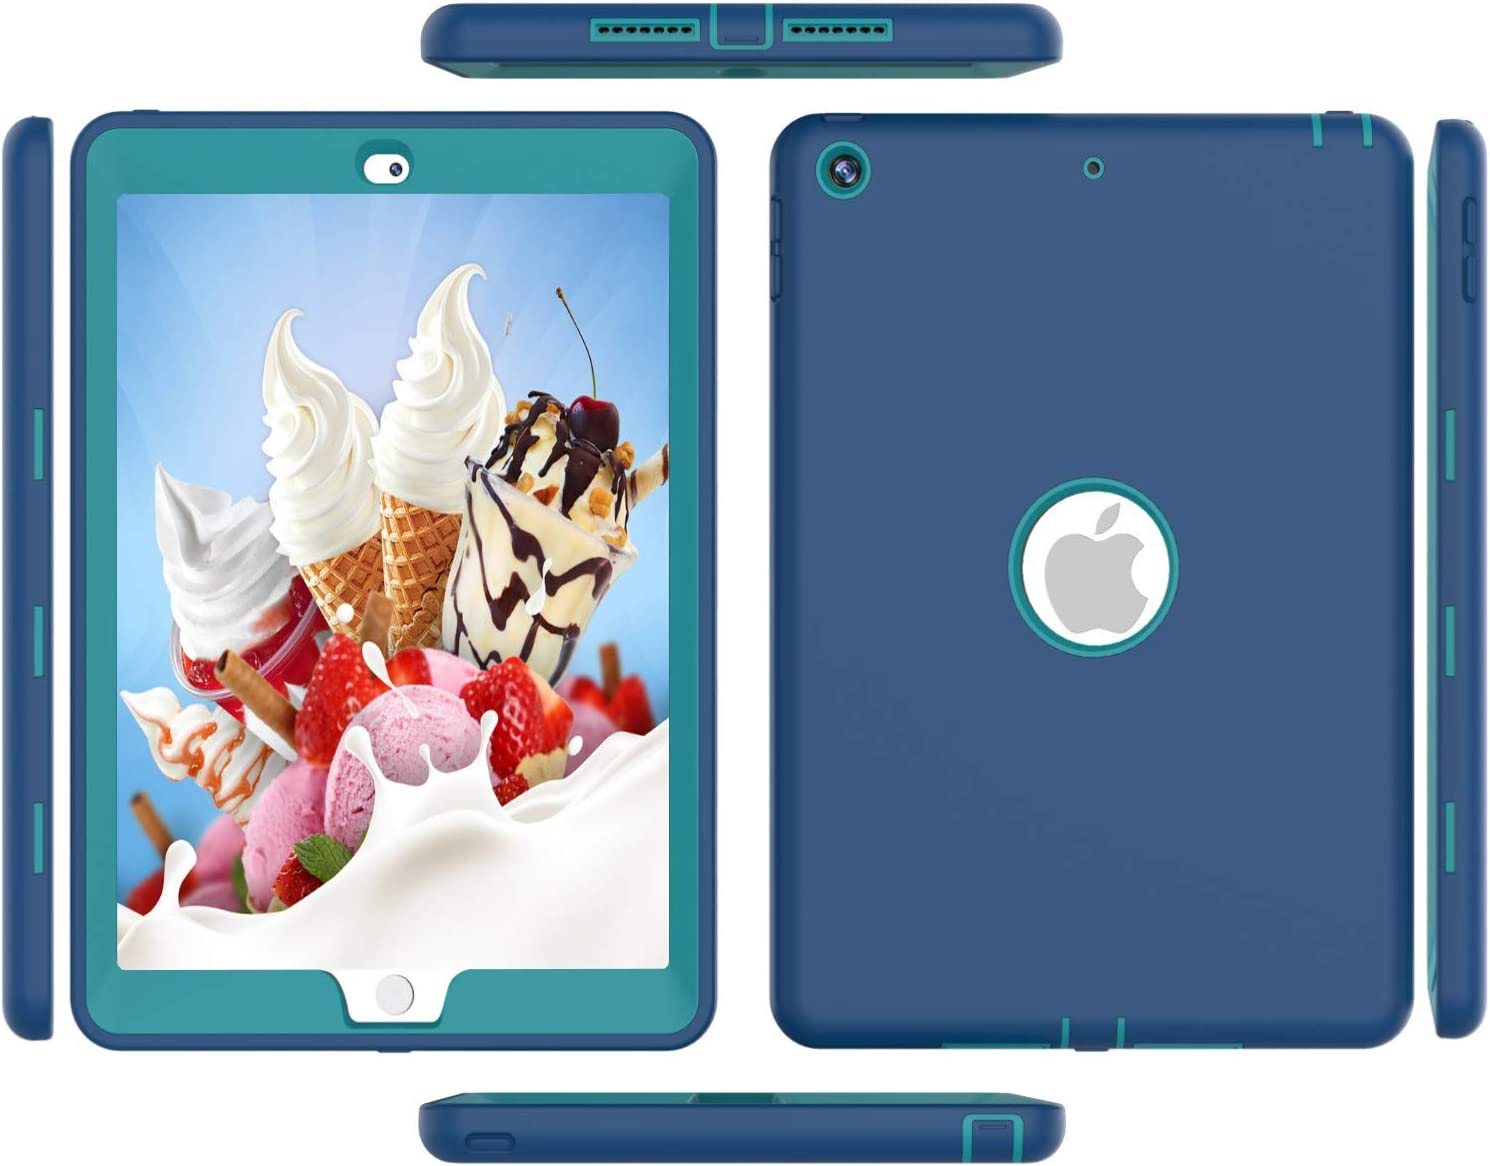 Ipad Case 4th Generation, Ipad 3 Gen Case, High-Impact Shock Absorbent Silicone Hard Plastic Dual Layer Protective Case for IPad 2/3/4 Gen Model A1458 A1430 A1416 Blue Blue